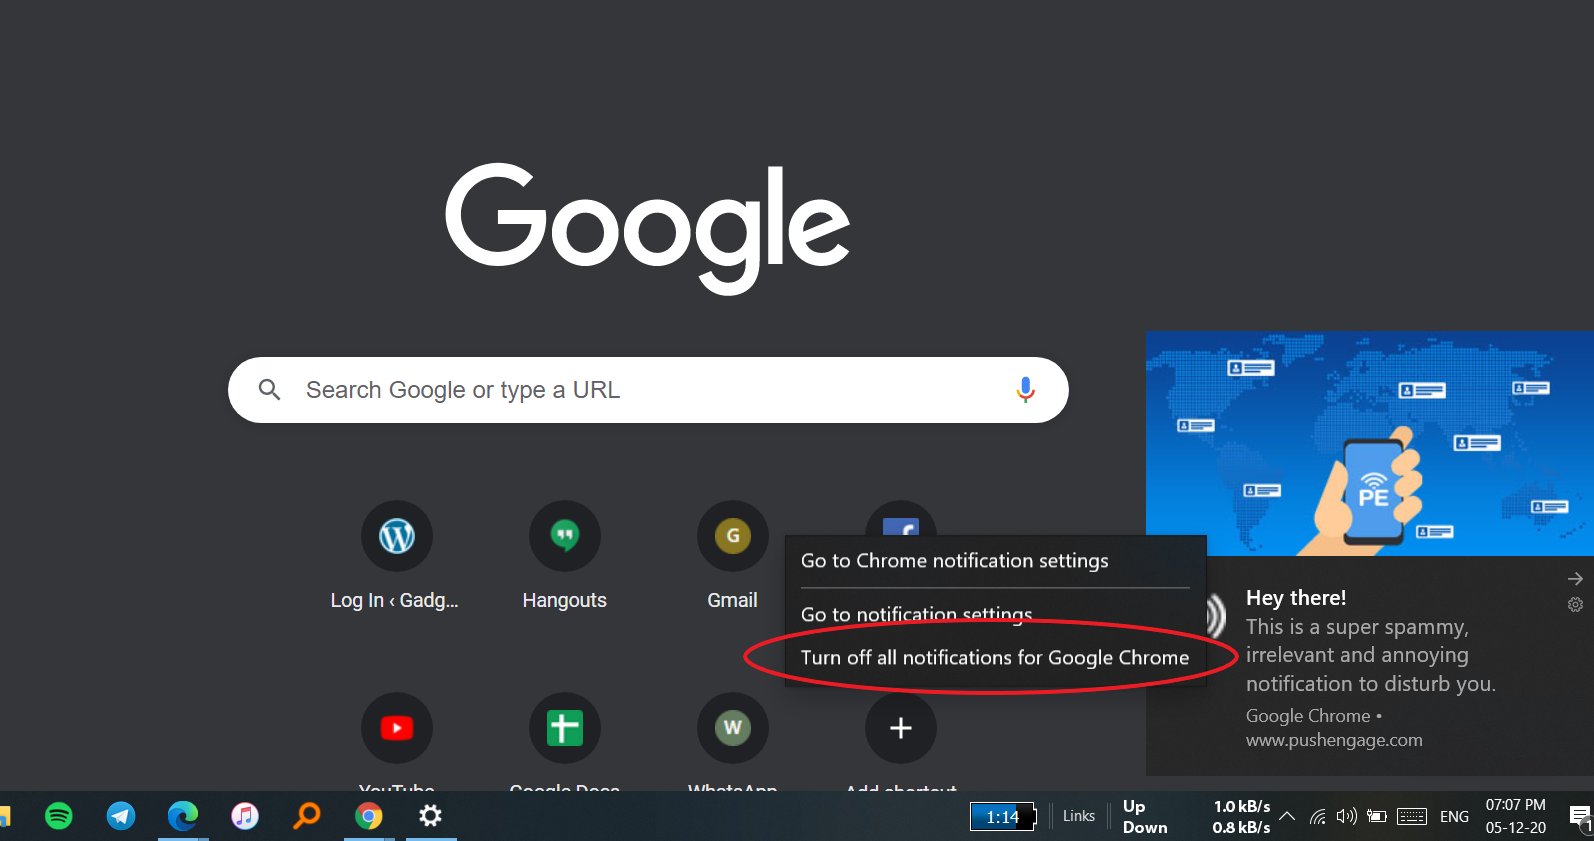 How to Stop Notifications from Google Chrome